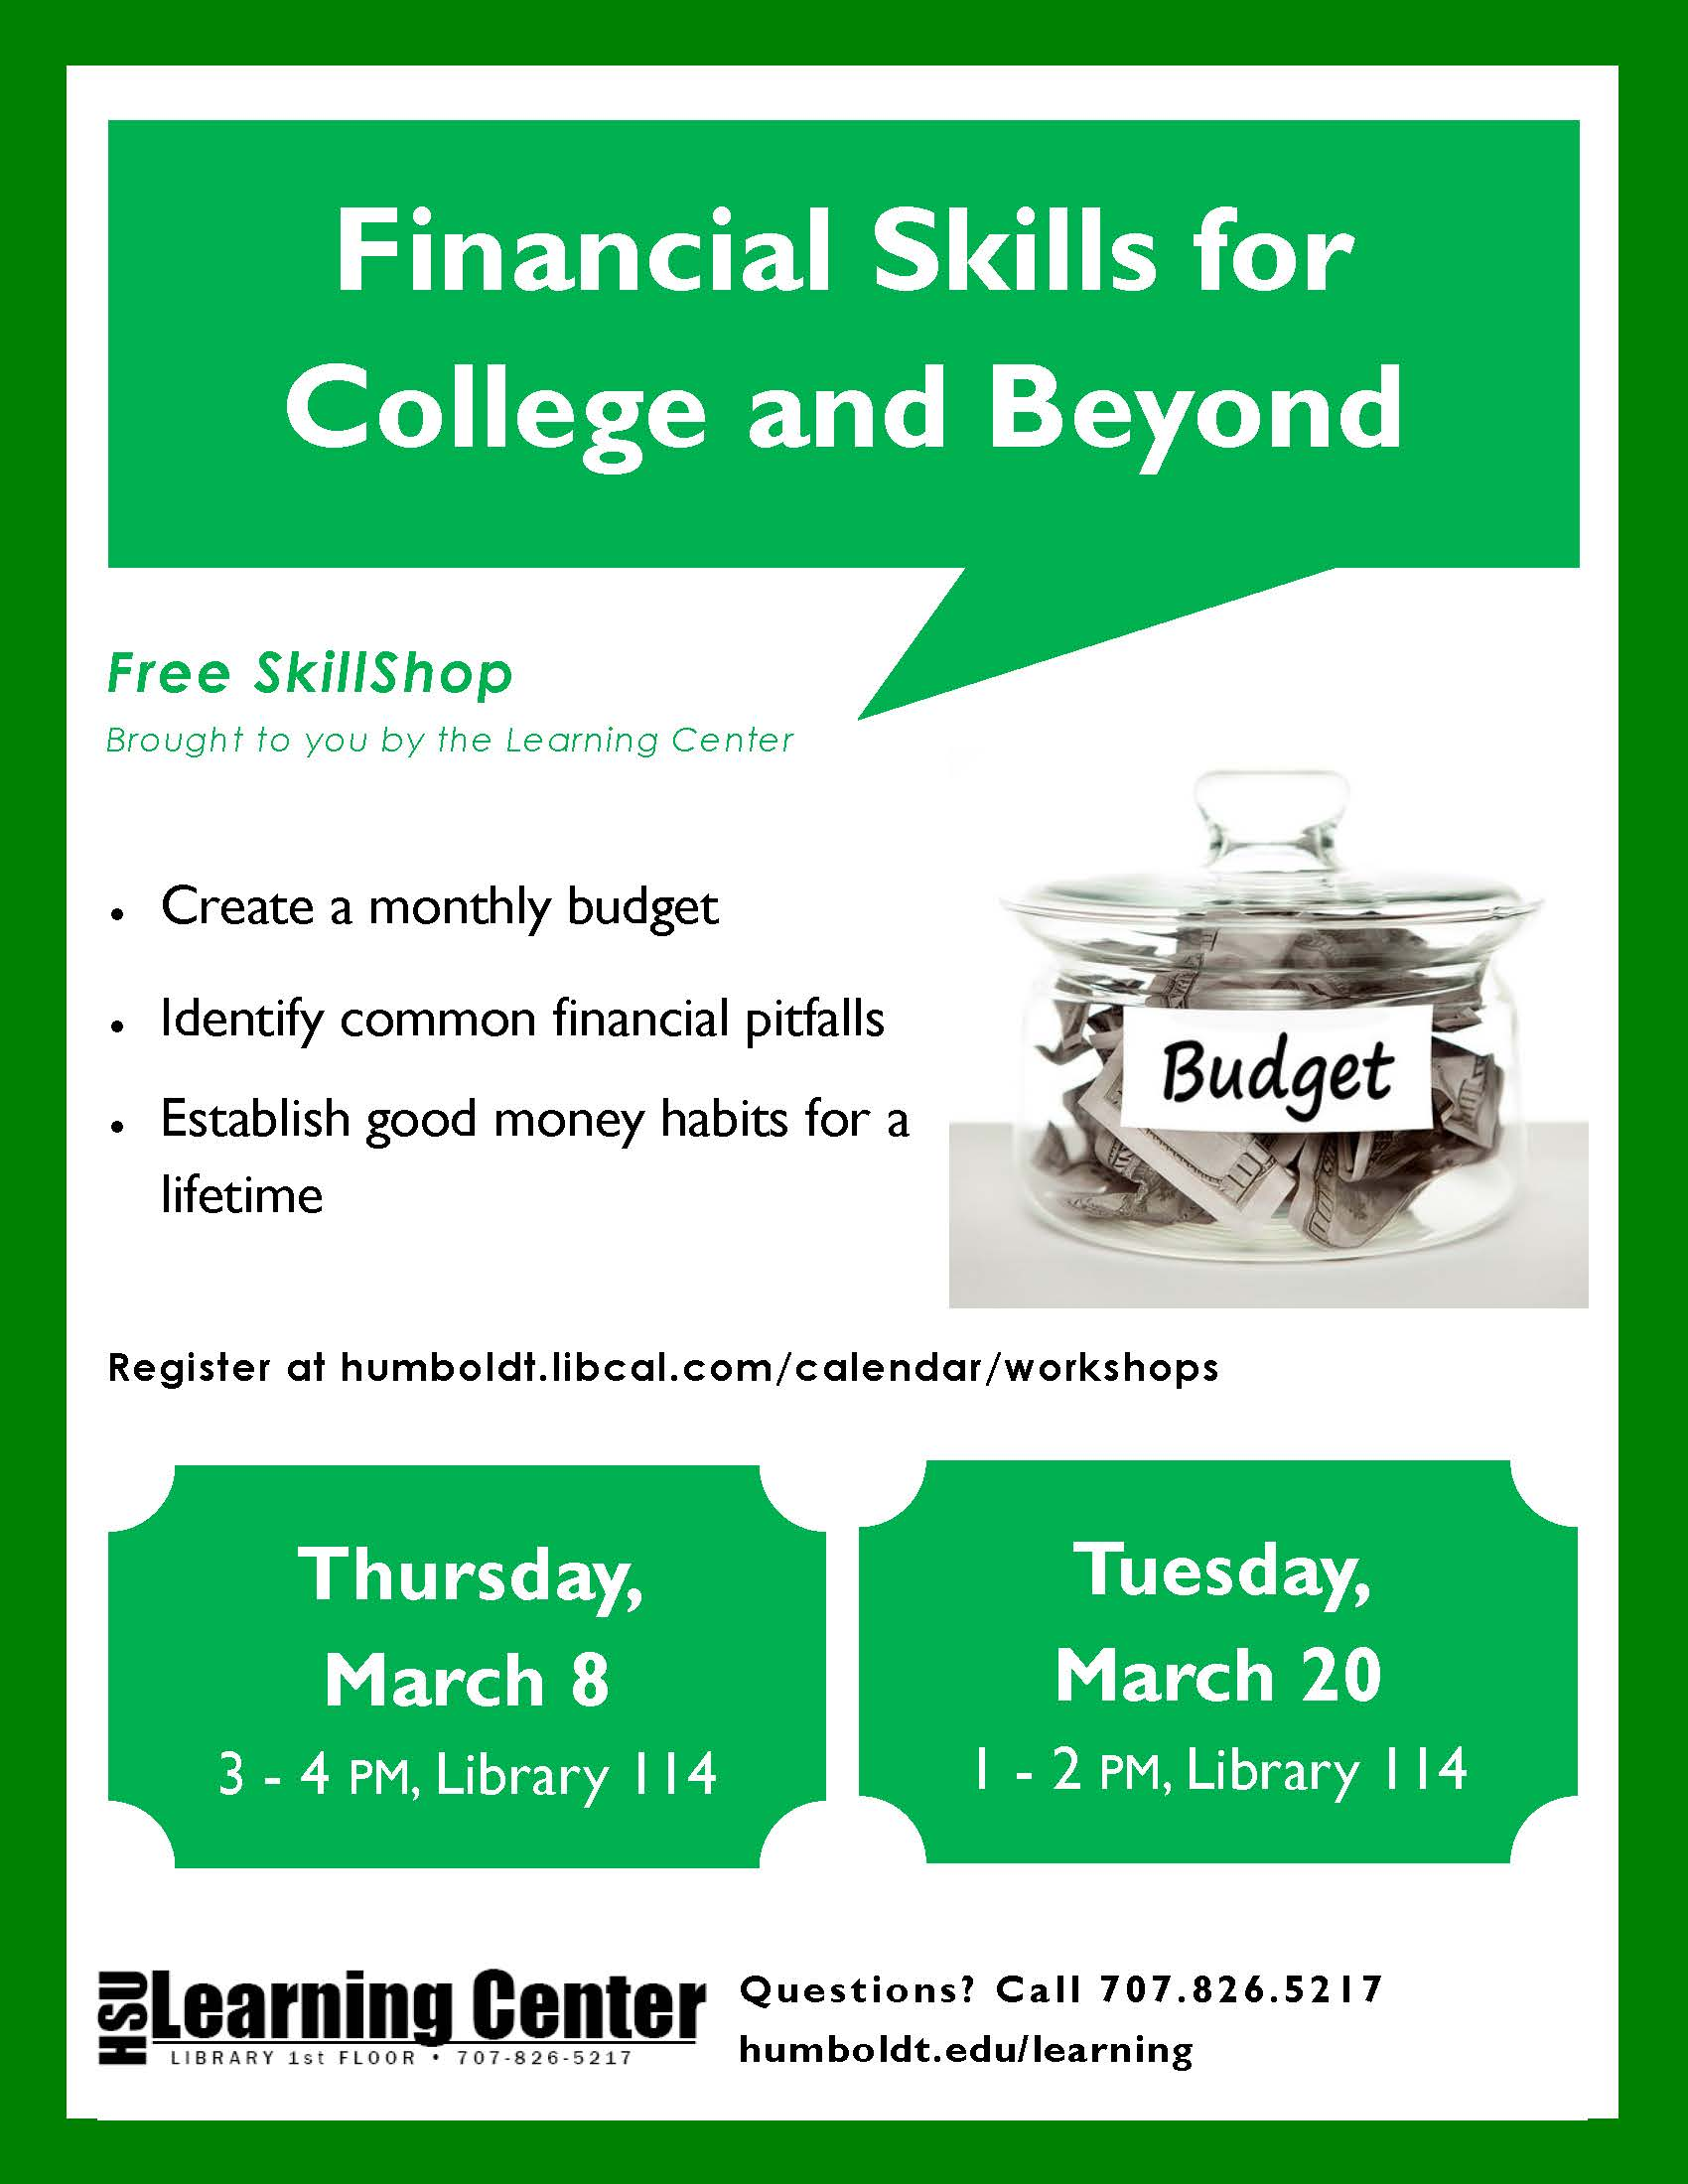 Financial Skills for College and Beyond